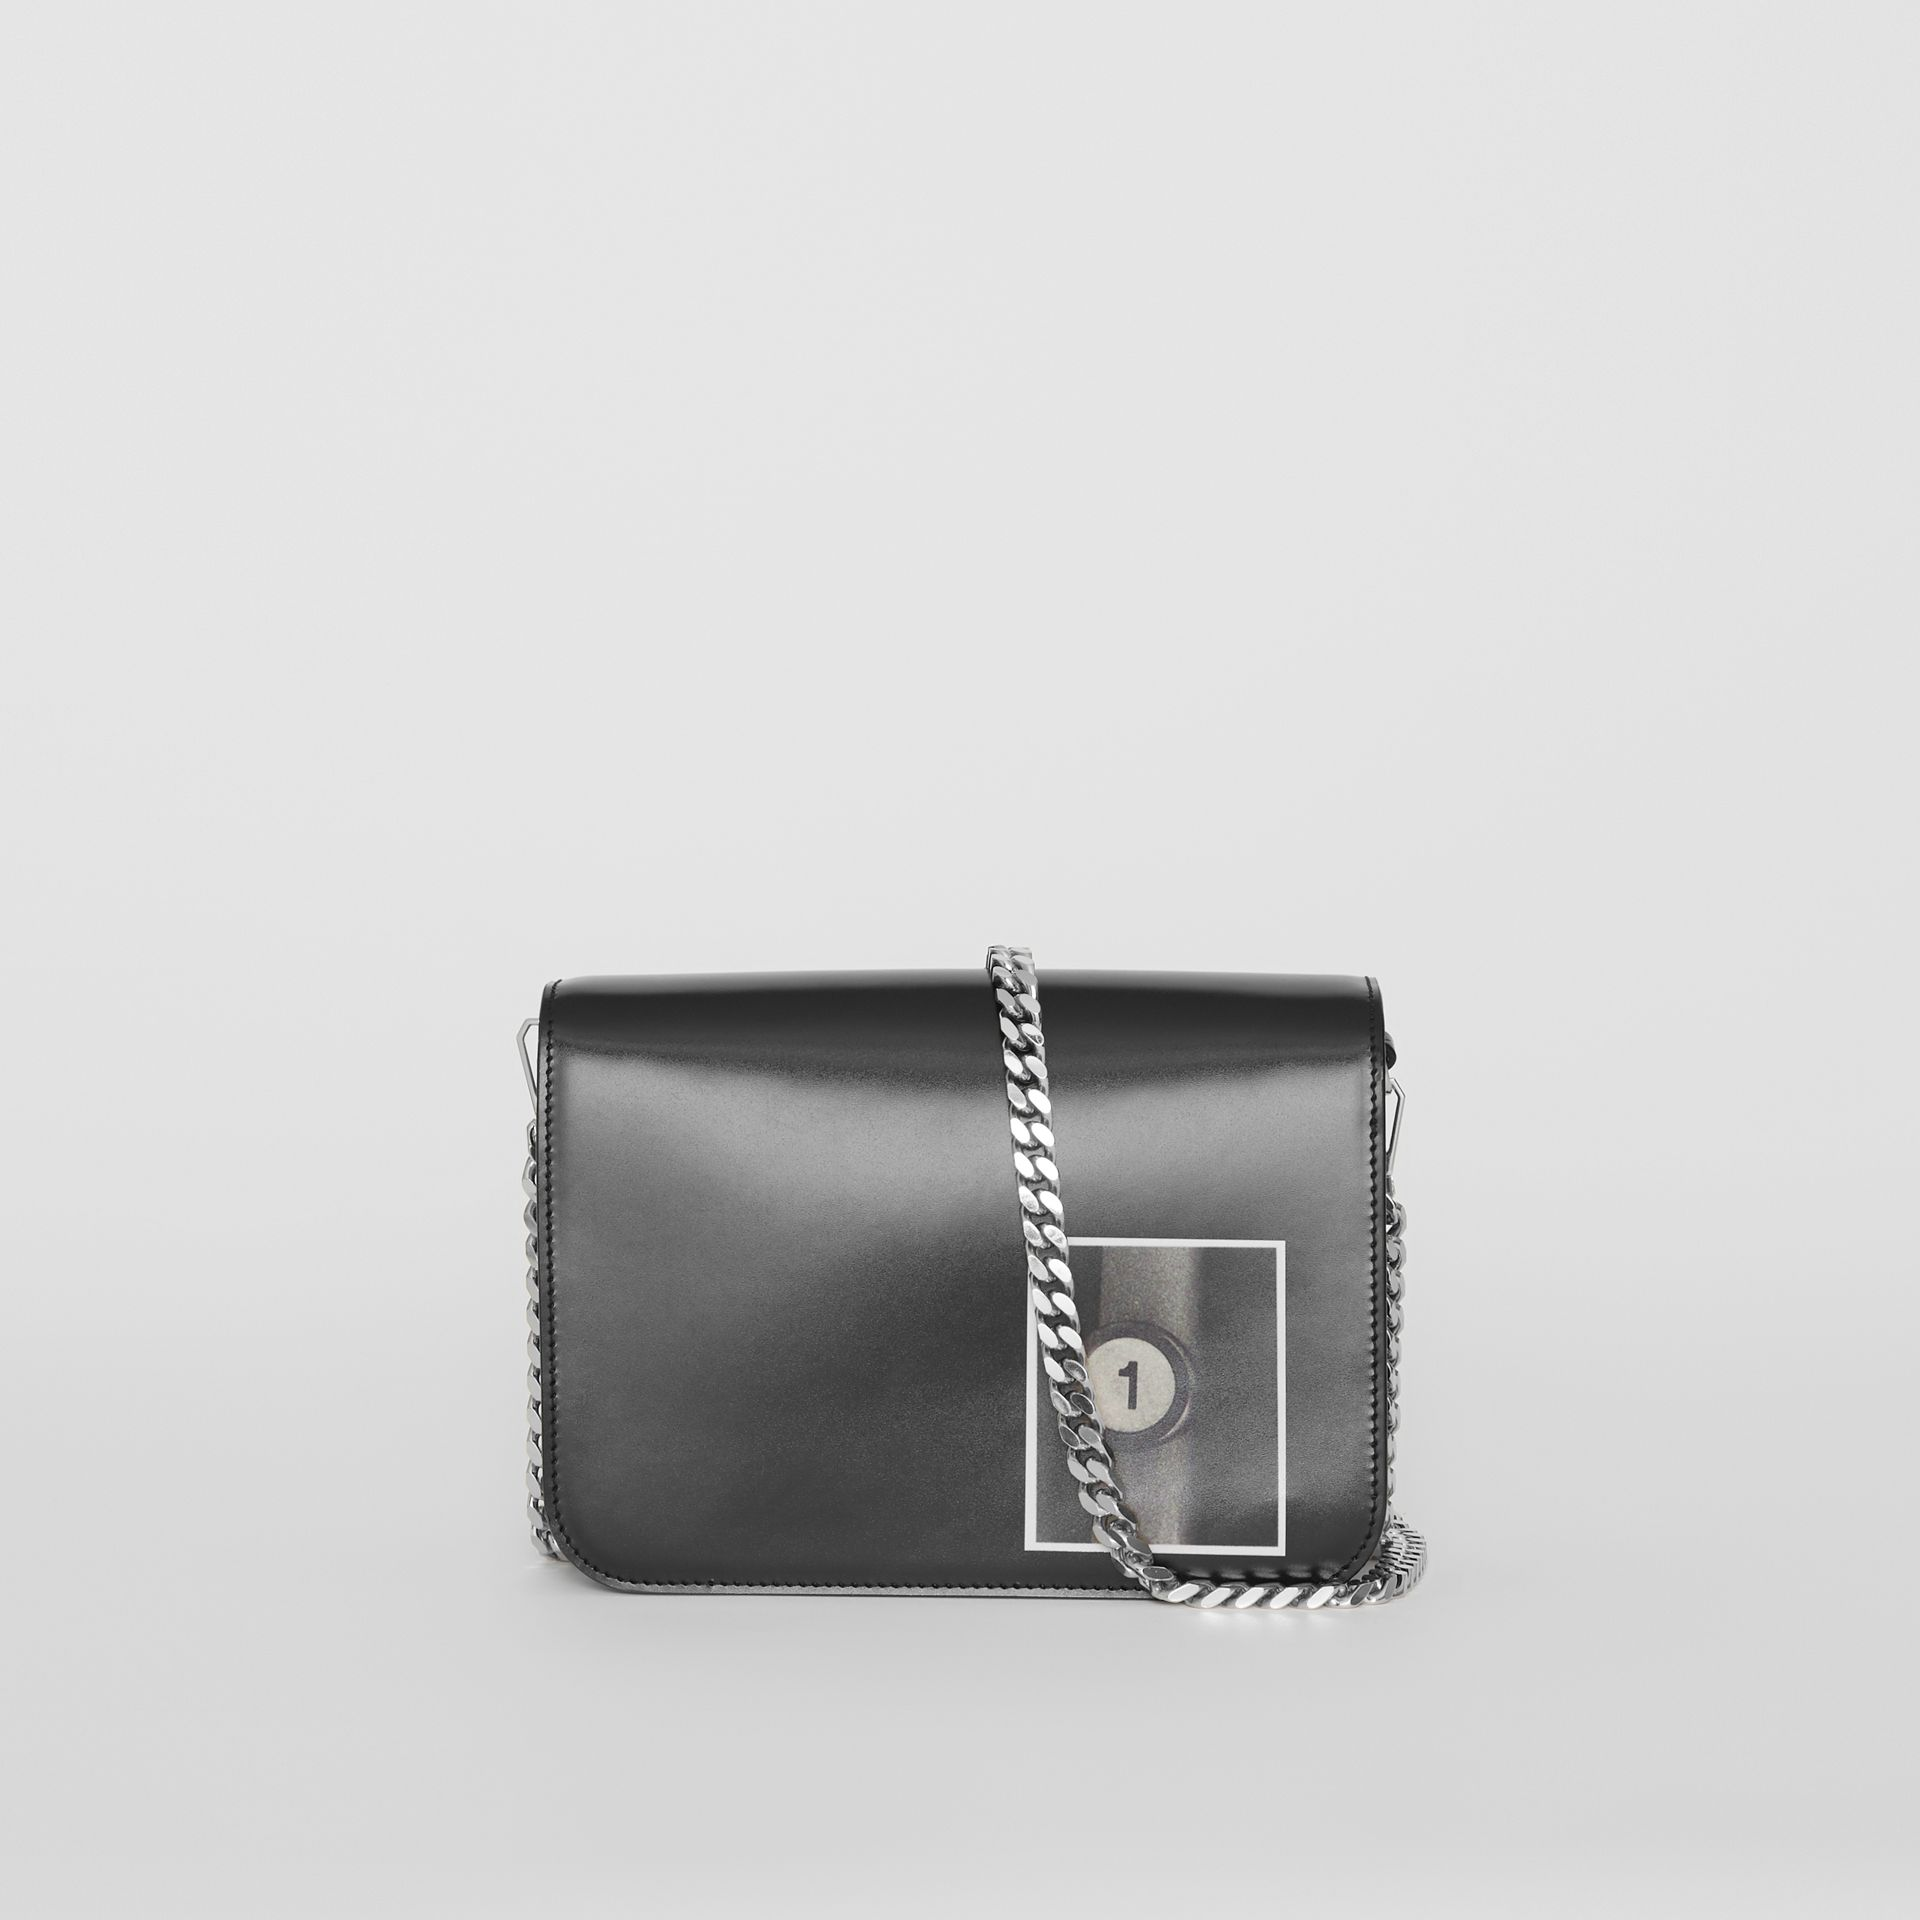 Small Montage Print Leather TB Bag in Black - Women | Burberry Australia - gallery image 7